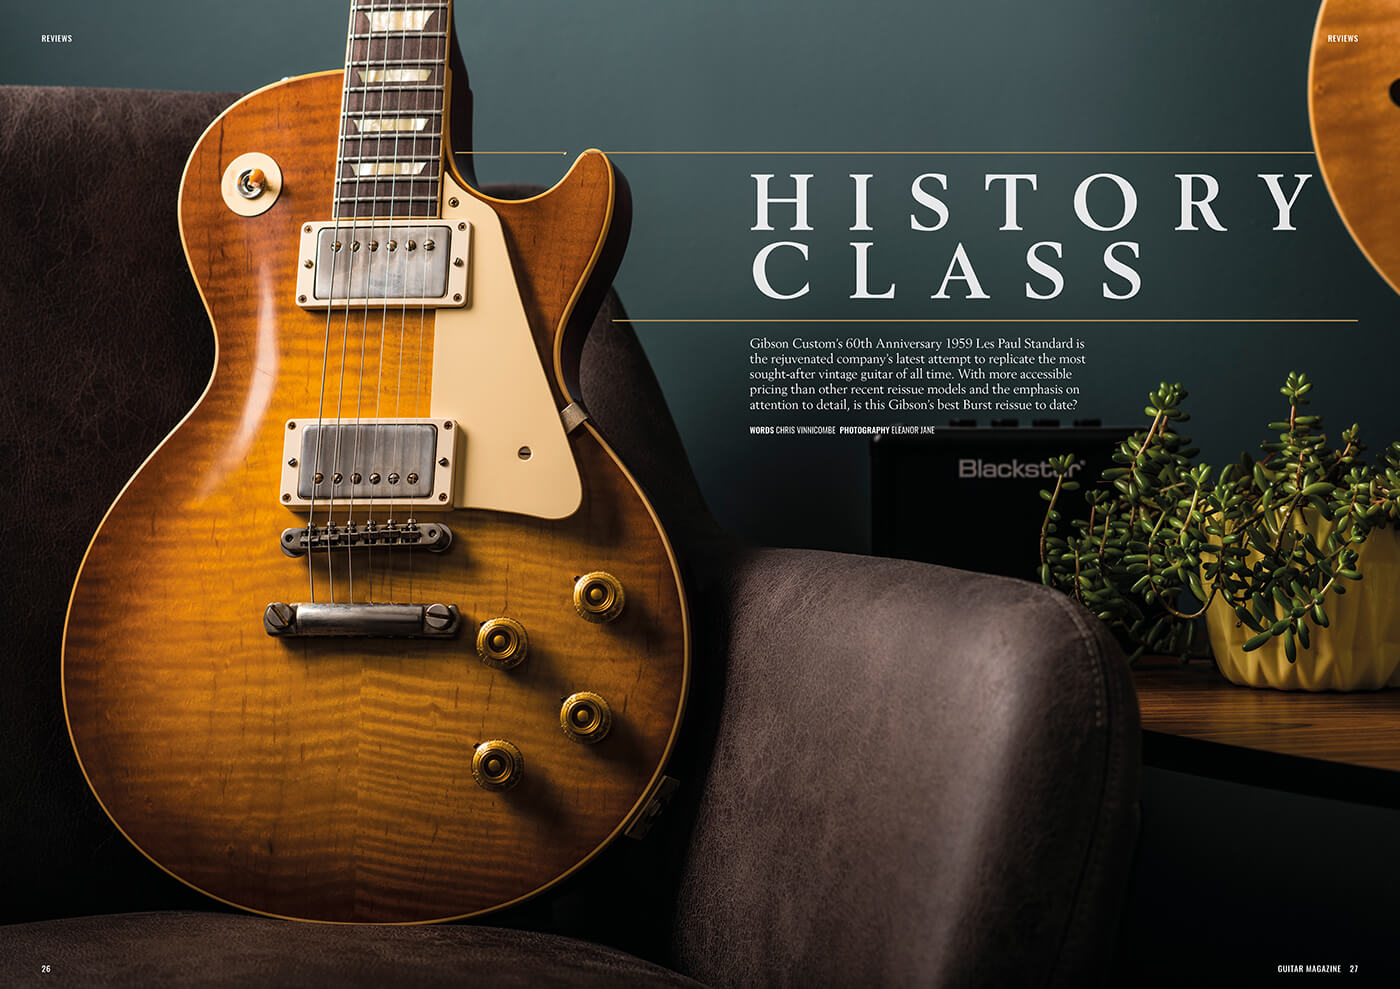 gibson custom 60th anniversary 1959 les paul standard review